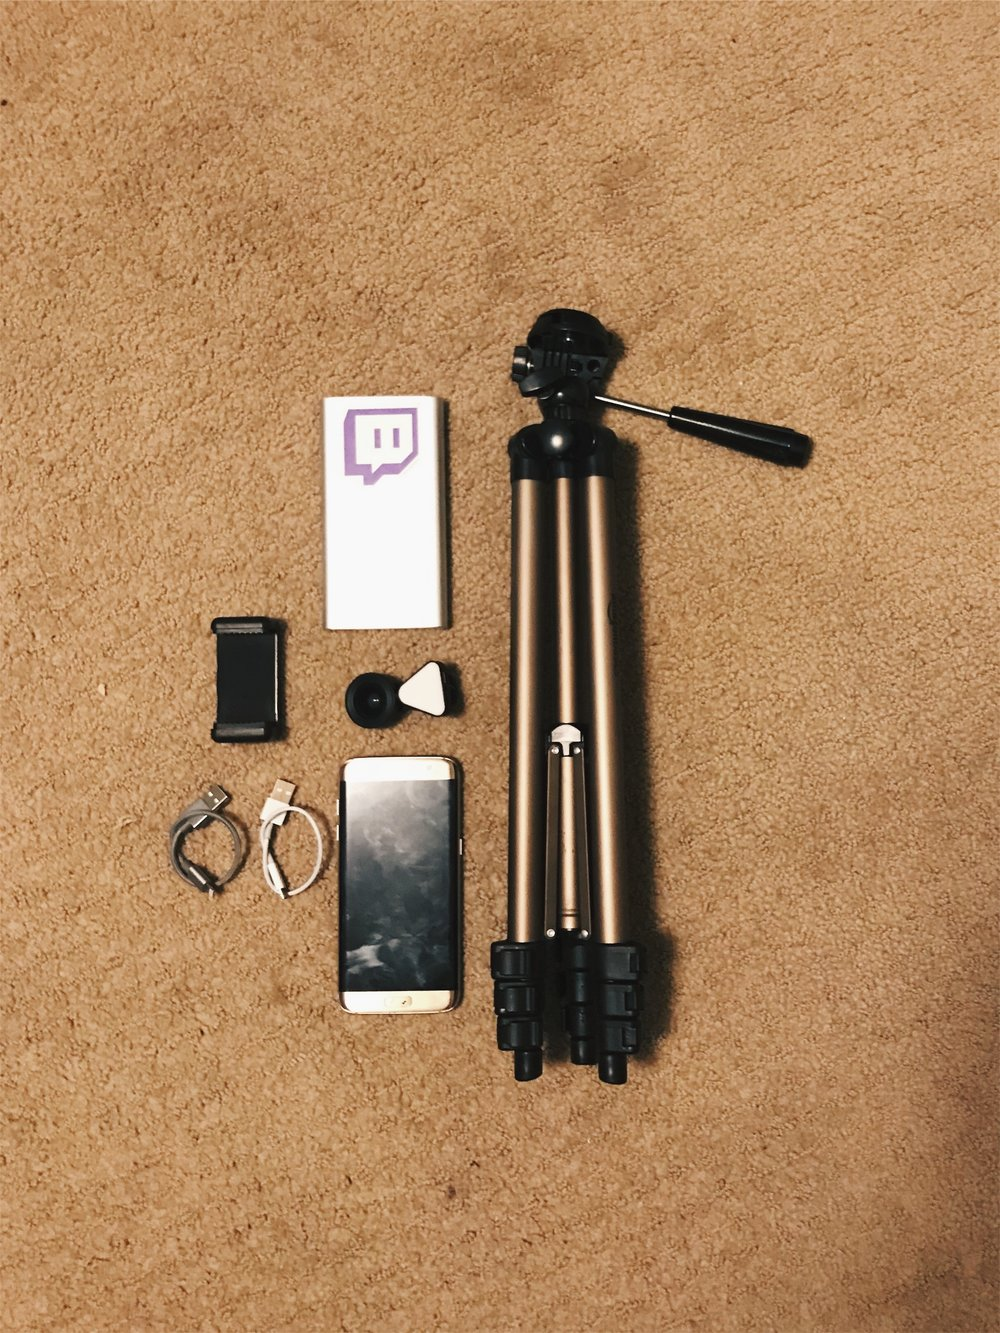 This was my old setup, with a 10000 mah power babnk, amazon light tripod, shortened wires, AMIR 3 in 1 wide angle clip on lens, samson s7 edge obviously